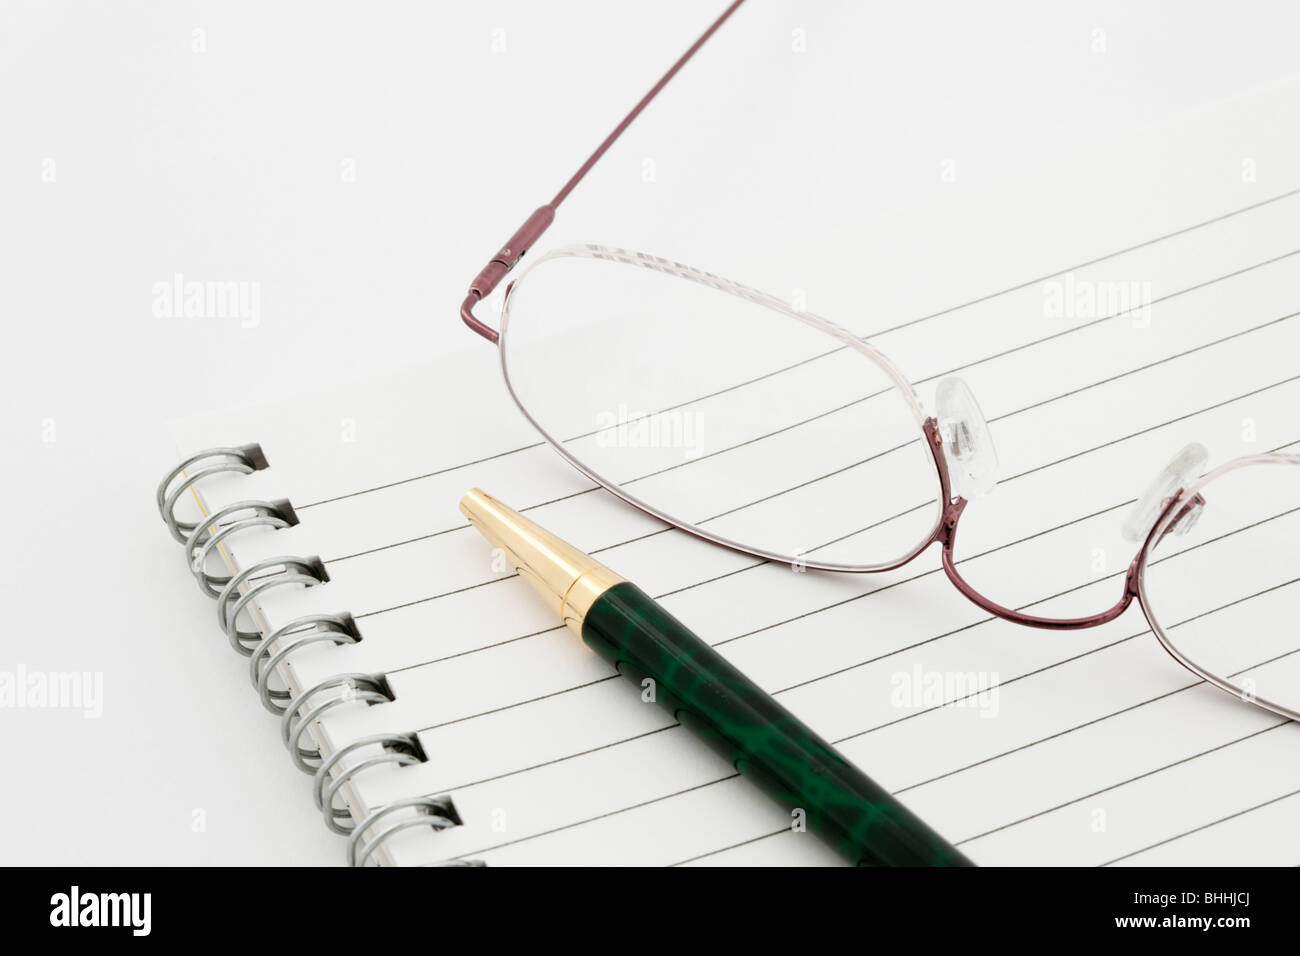 Close-up of a blank lined paper spiral bound notebook notepad with a ballpoint pen and a pair of spectacles on a - Stock Image